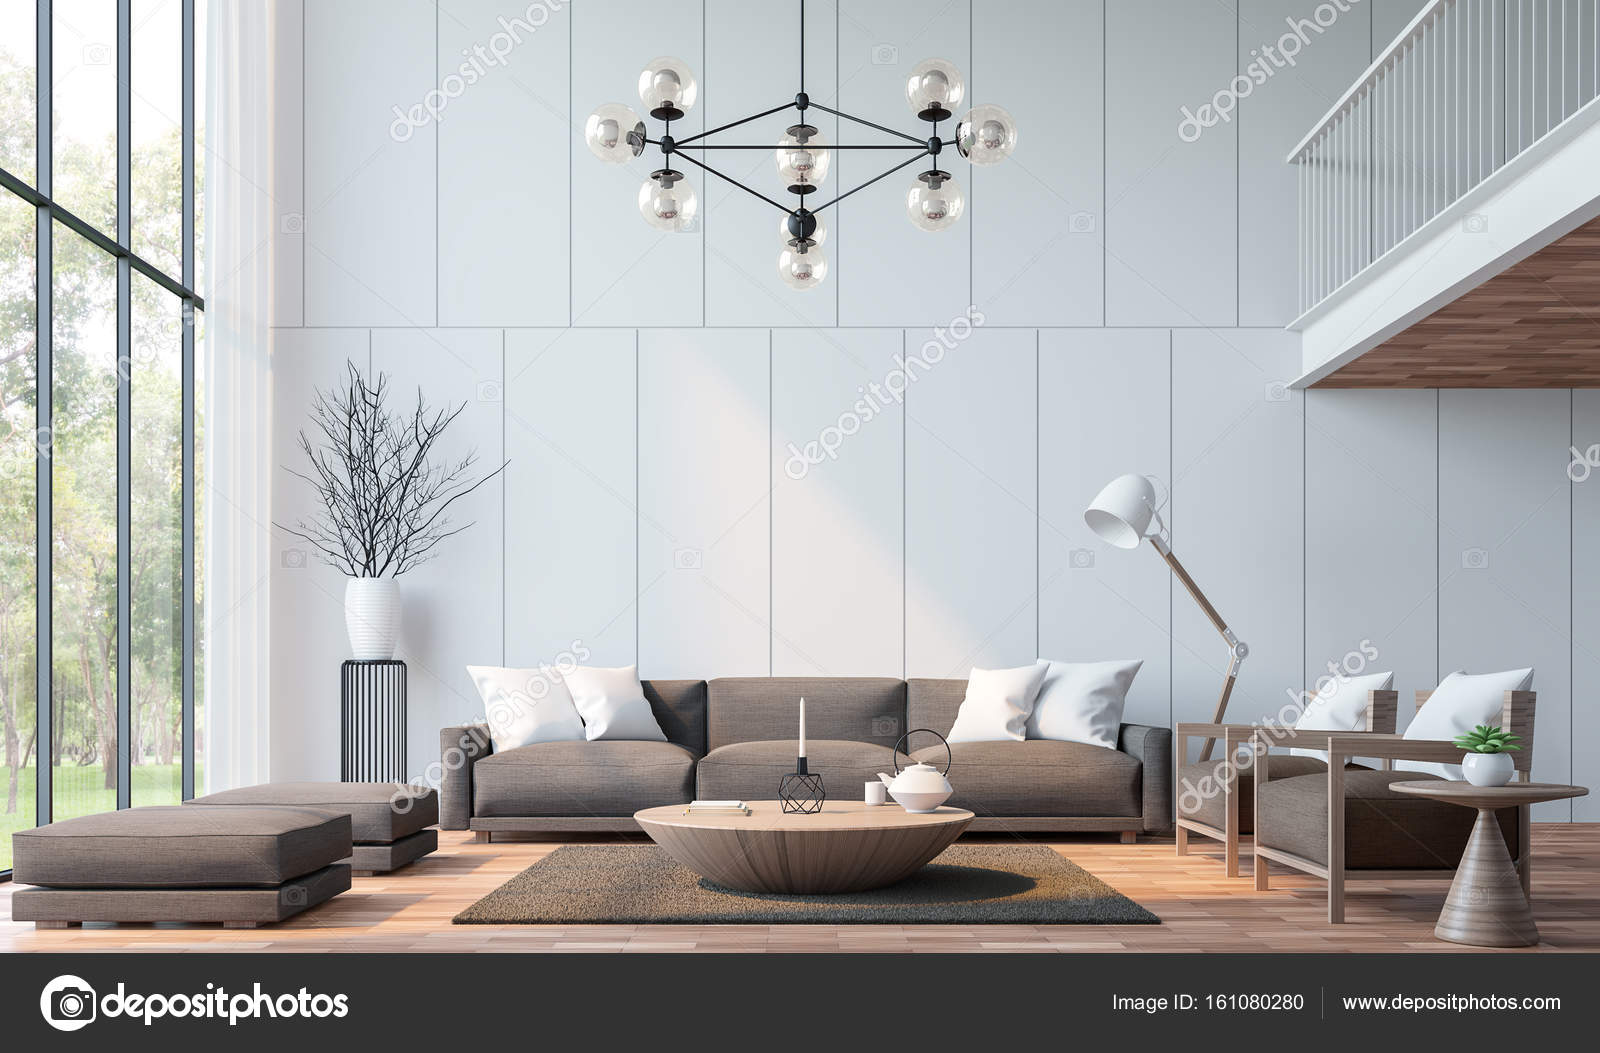 Modern living room with mezzanine 3d rendering image — Stock Photo ...